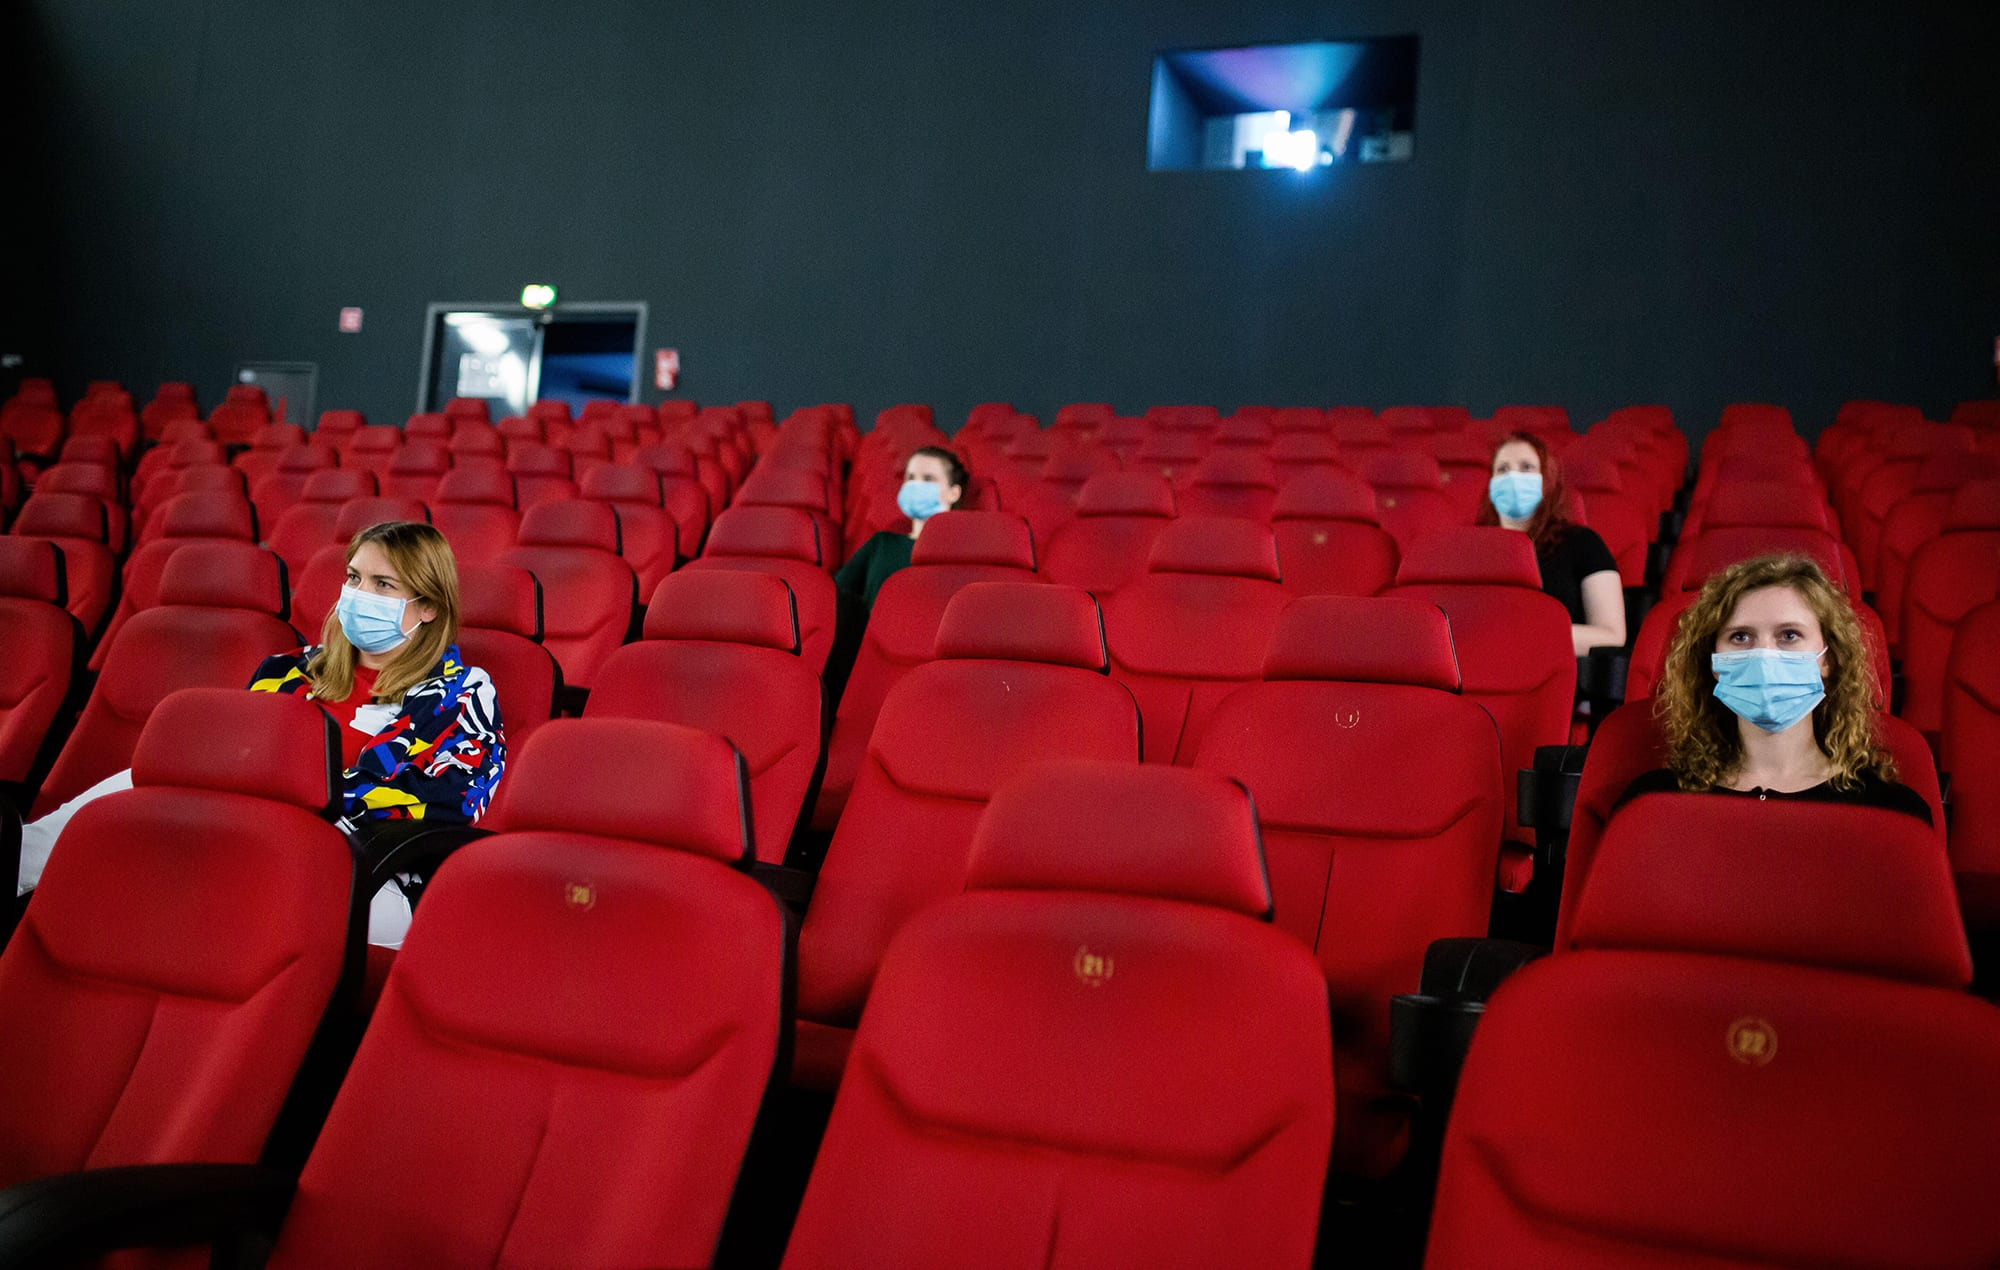 Customers have to keep their social distances in the cinema hall.